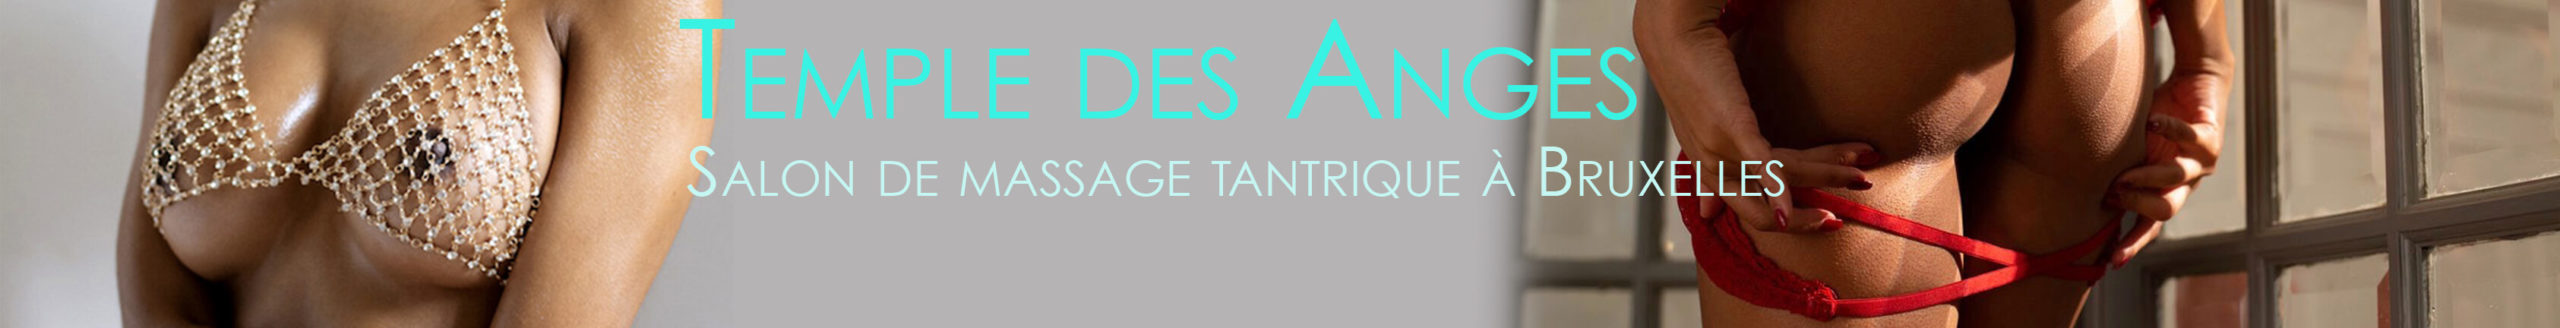 Temple des anges - salon de massage tantrique à Bruxelles